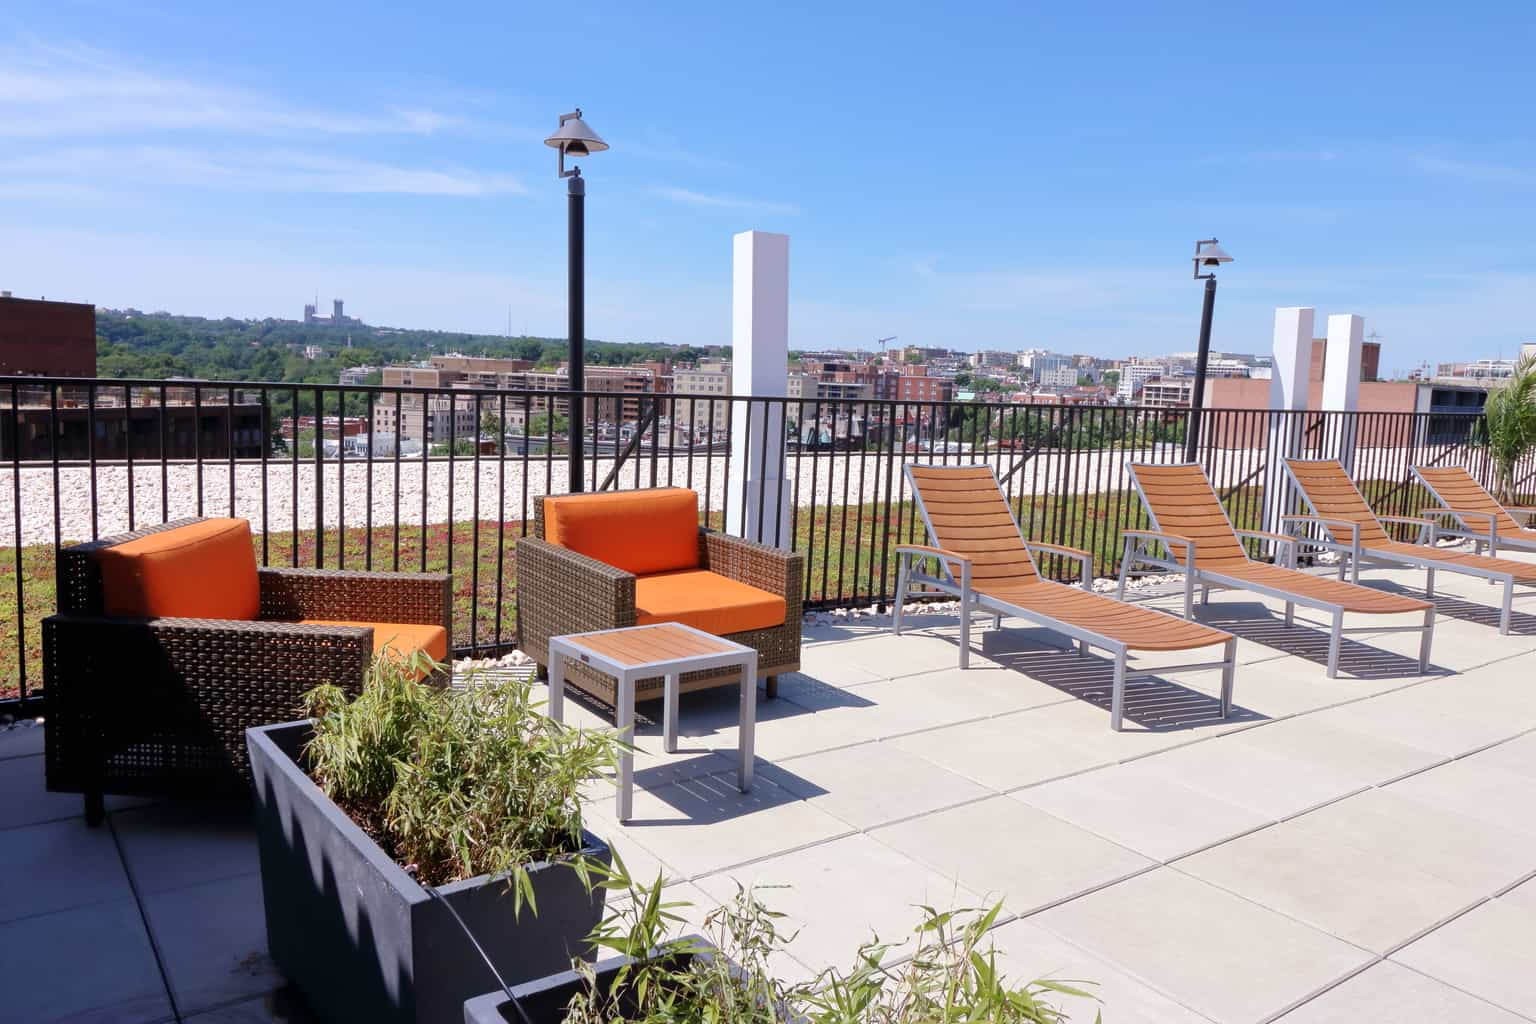 Hamilton House Rooftop Patio With Lounge Chairs